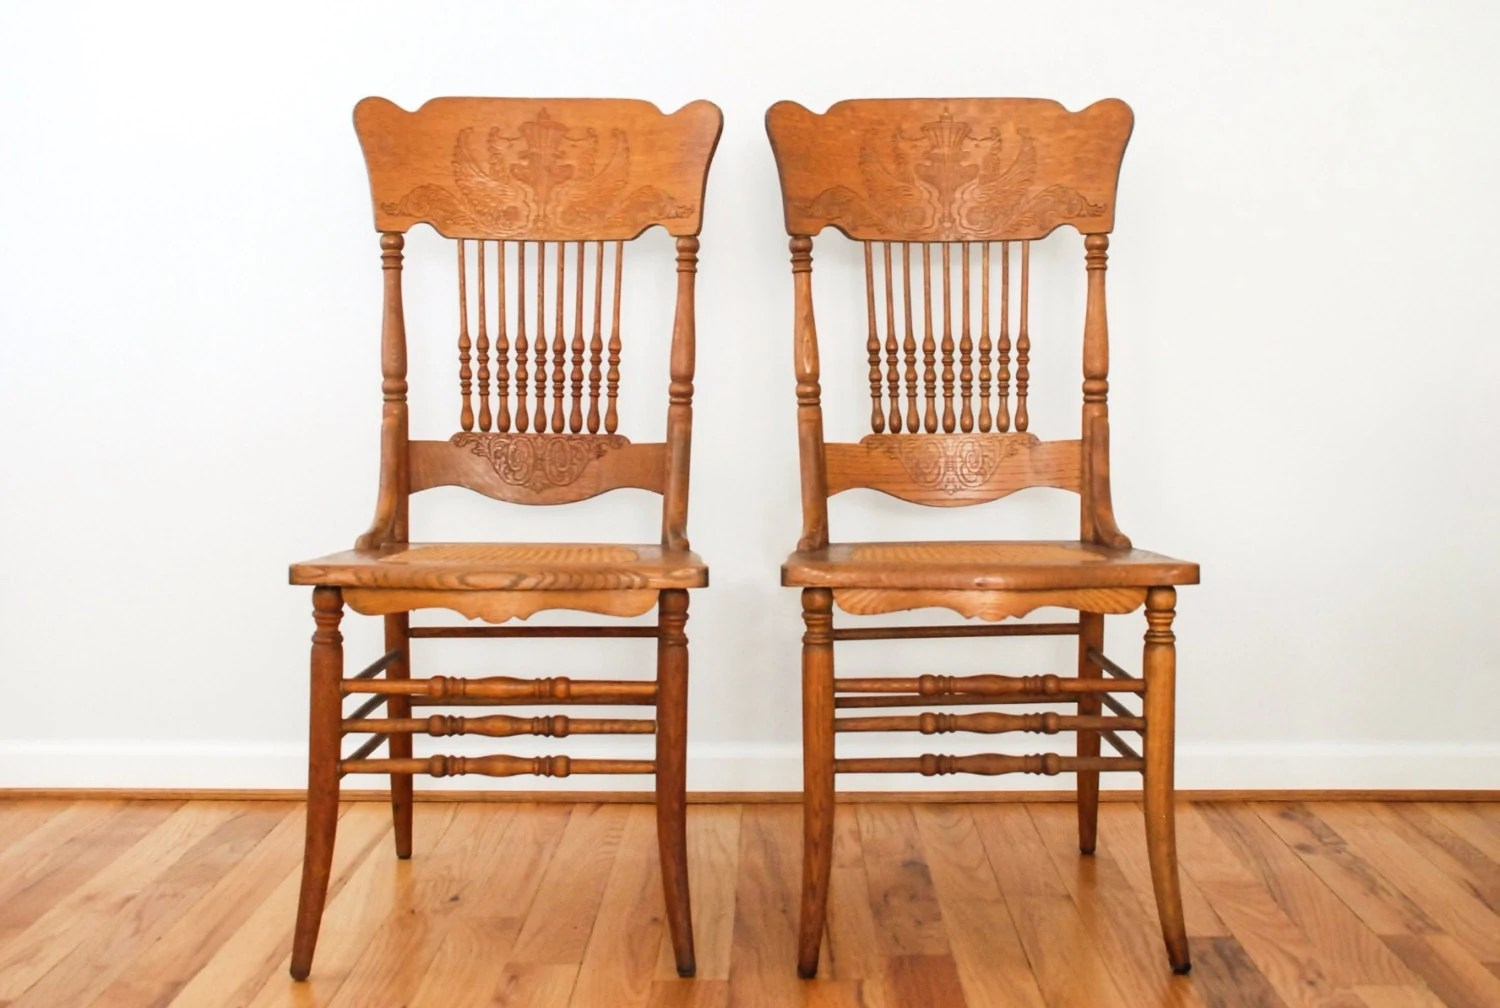 Wood Dining Chair Antique Wood Chairs Antique Dining Chairs Cane Chairs